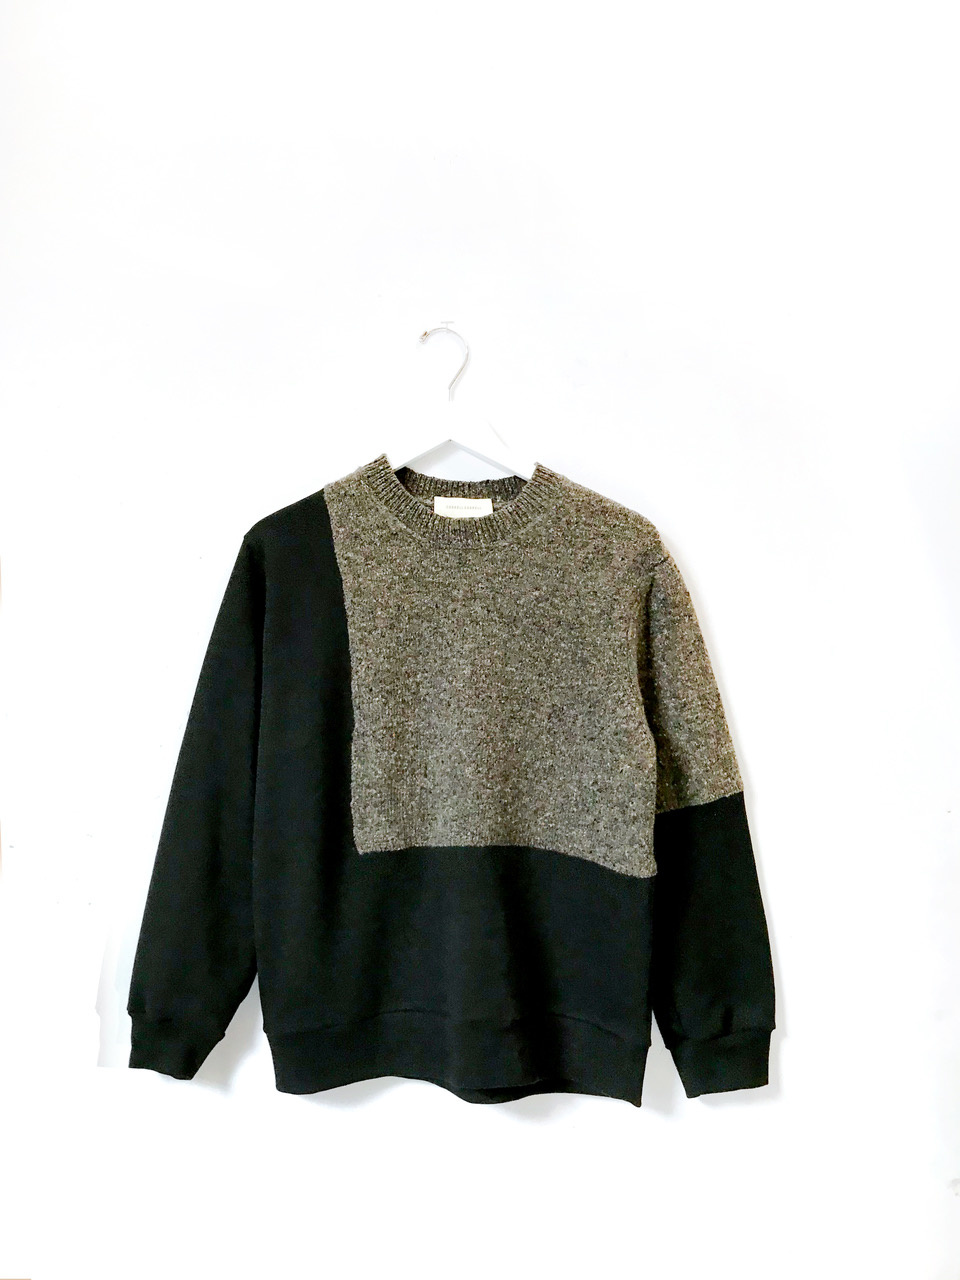 Correll Correll Ecke Knit Sweater, Grey and Black